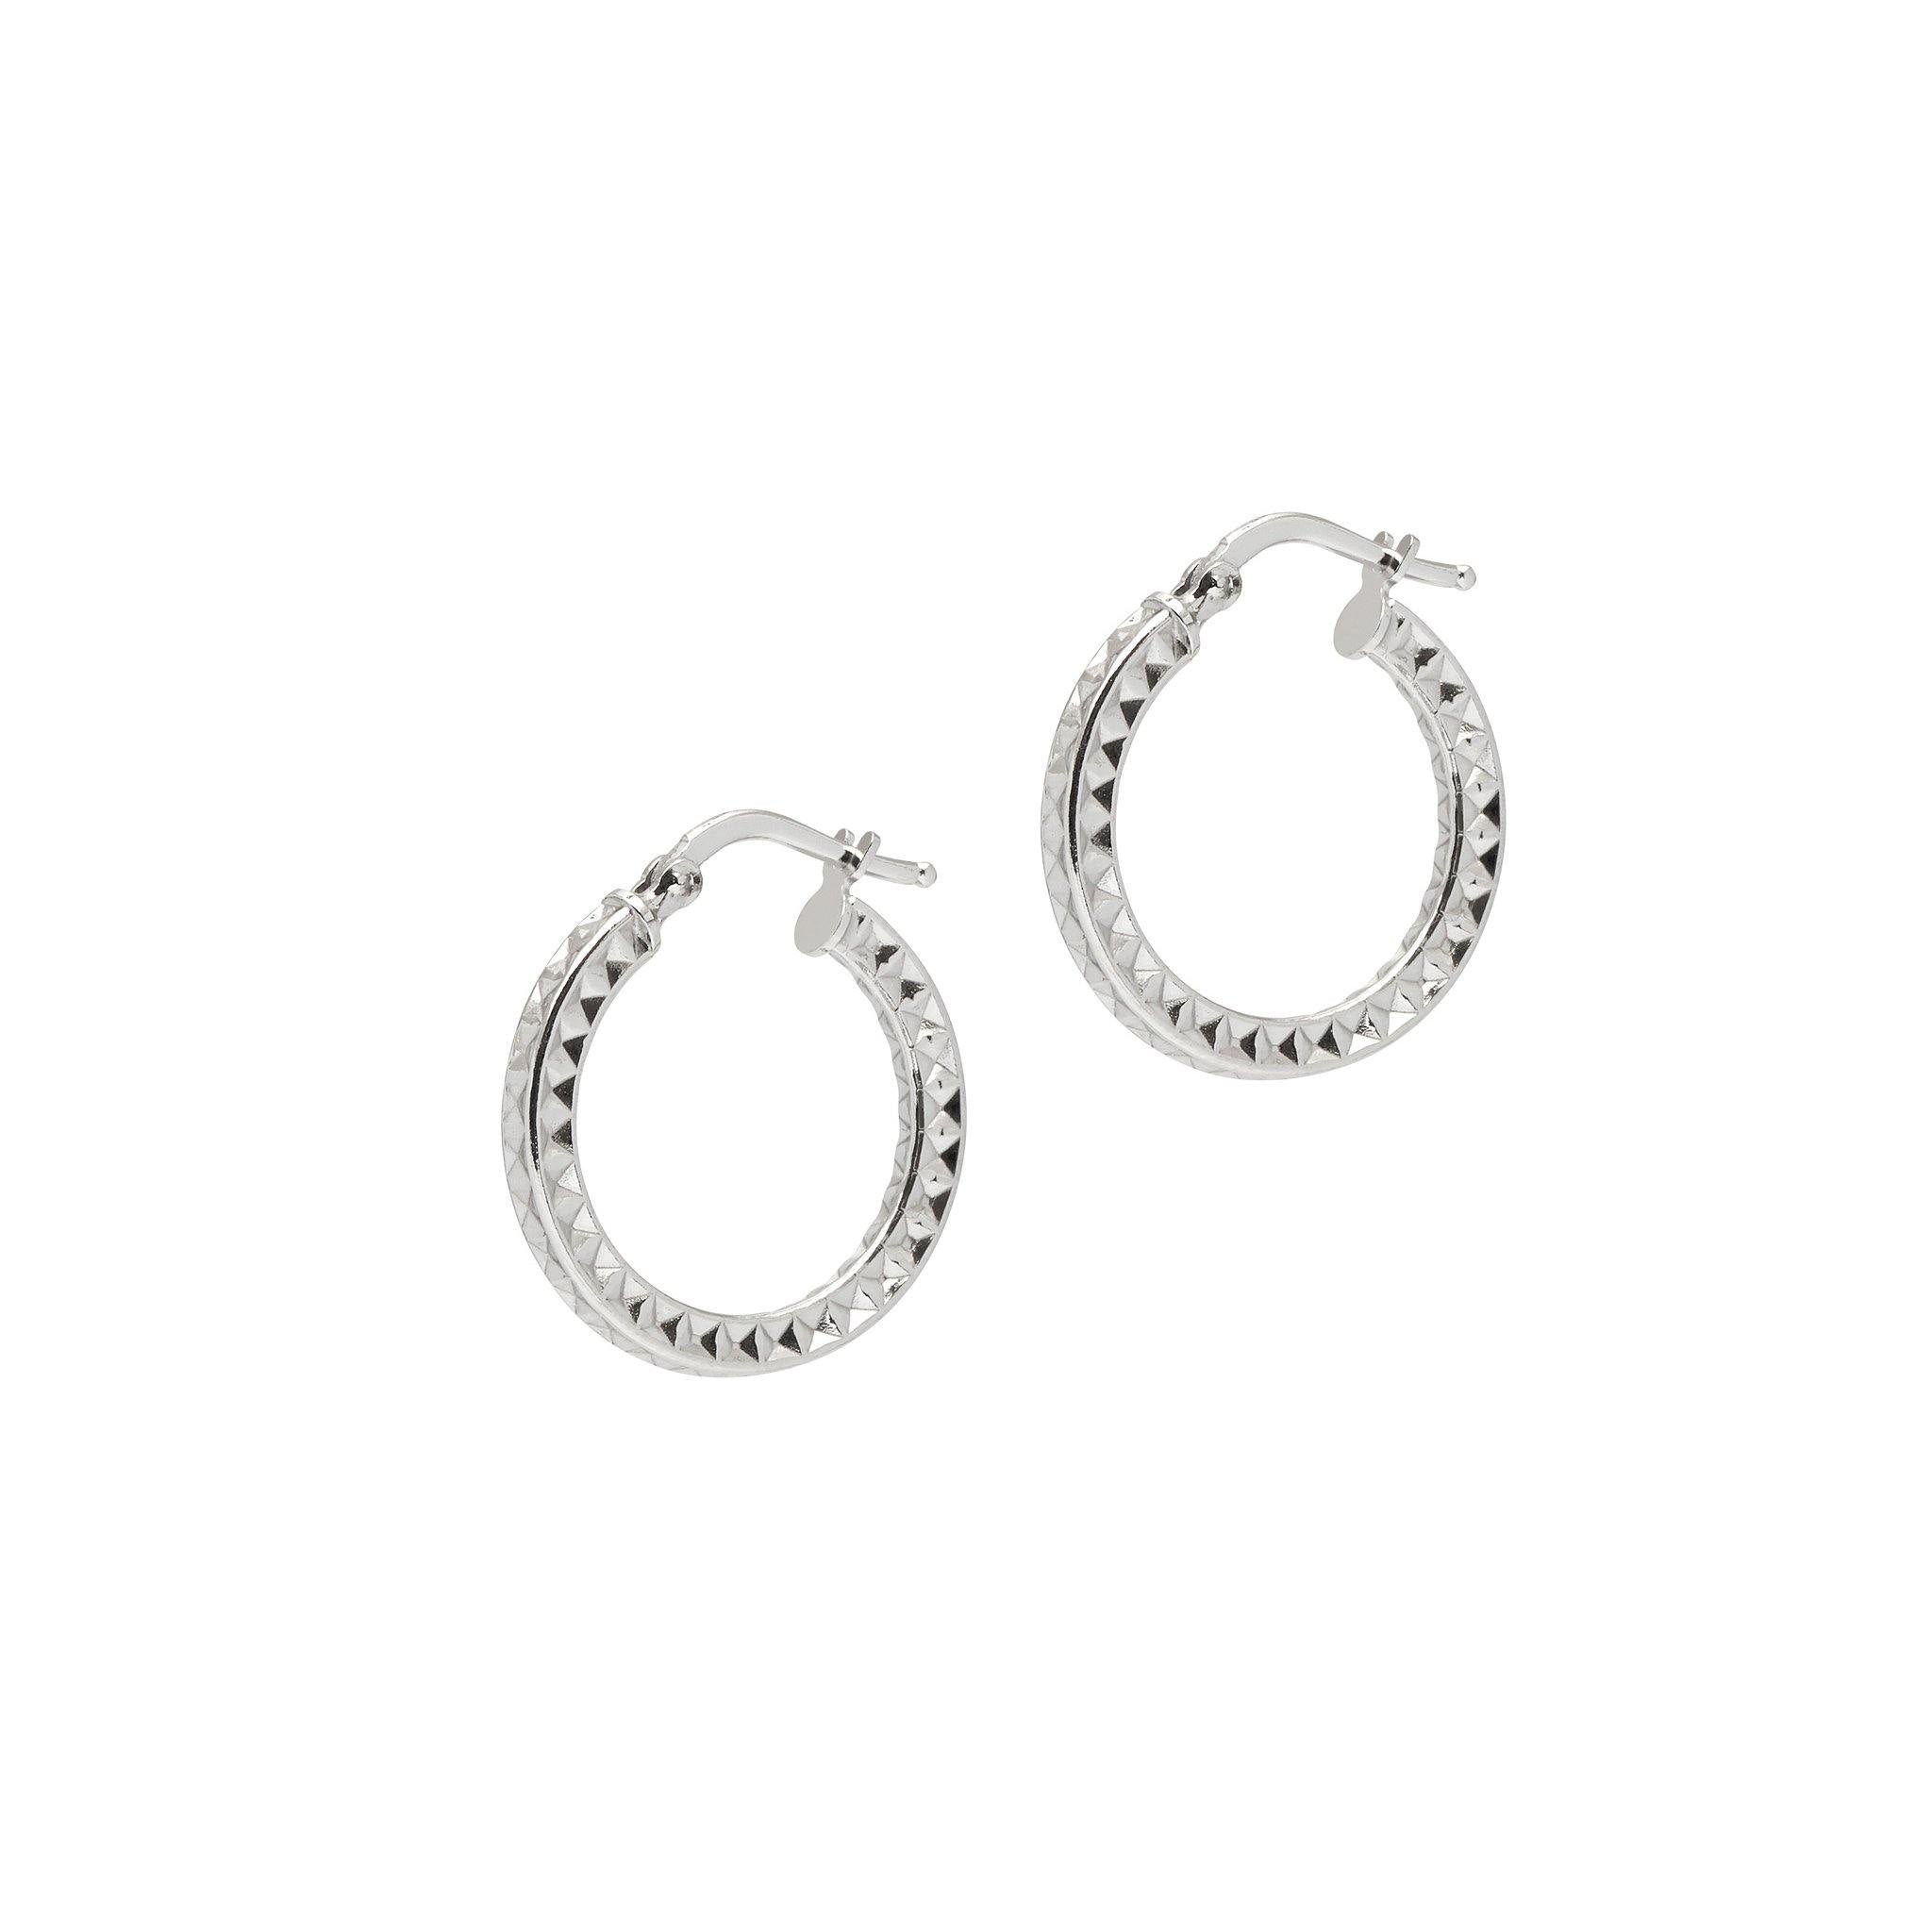 La AZTEC - Silver (2 x sizes) - The Hoop Station 925 Sterling Silver Hoop Earrings Gold Huggies